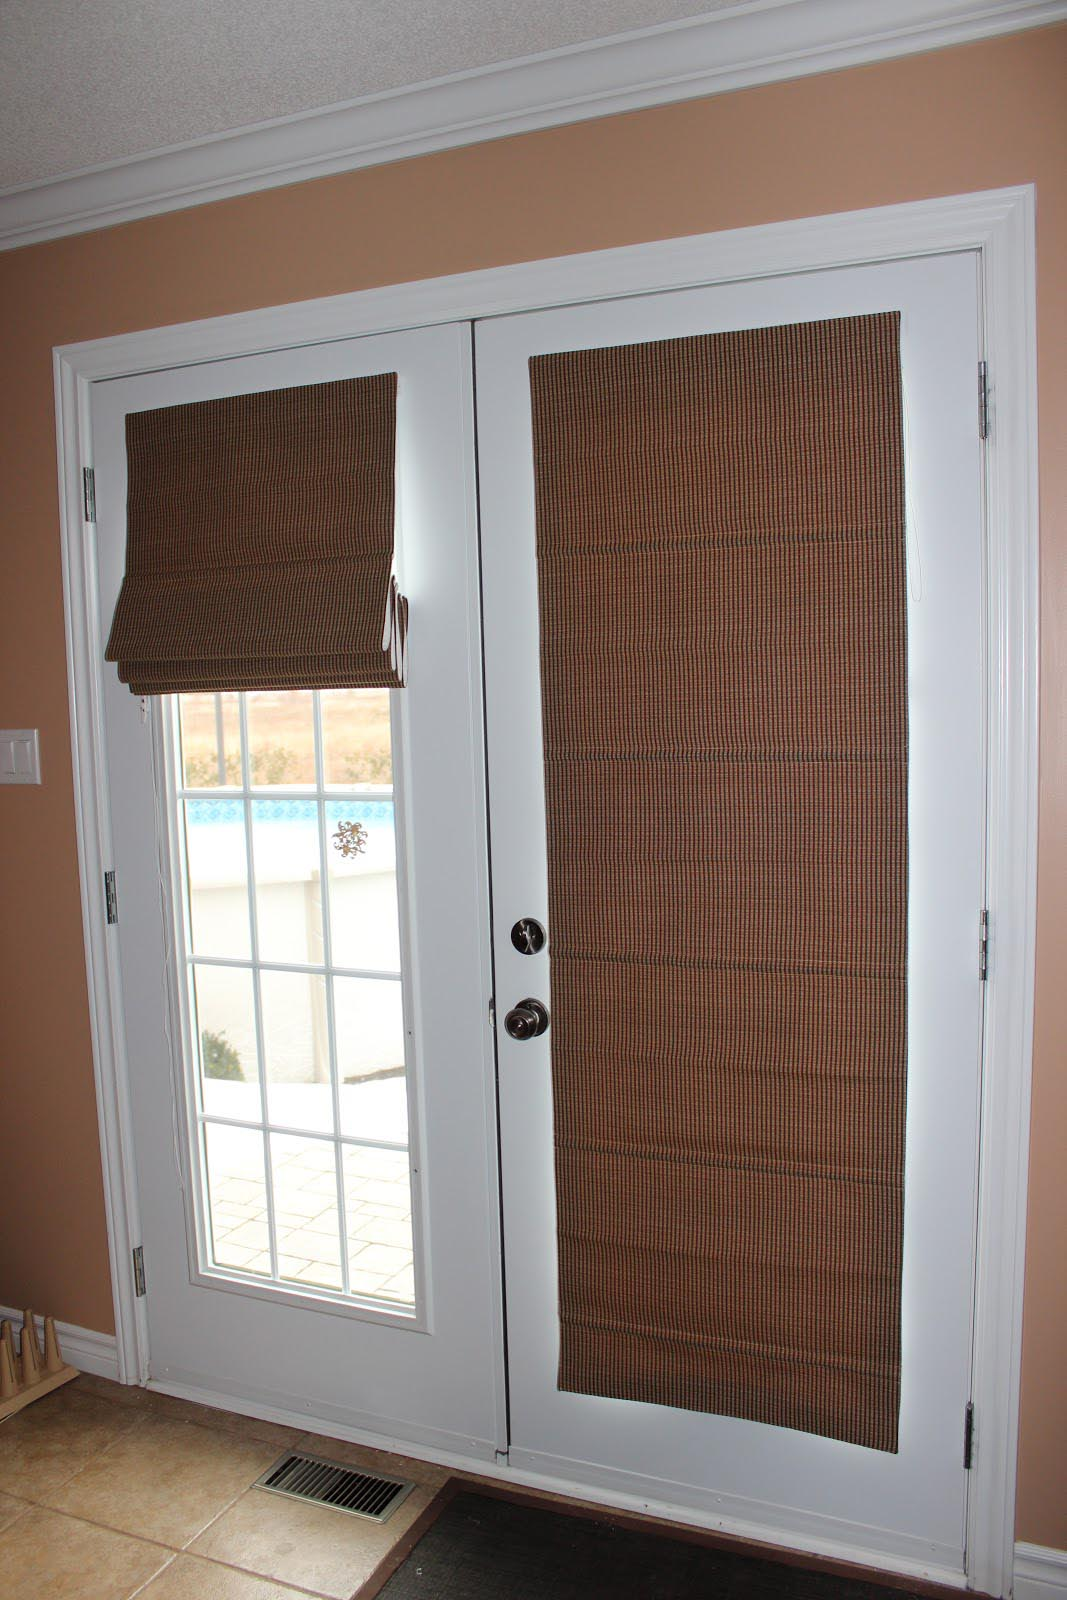 Door Shades Blinds Sliding Door Vertical Blinds Sliding